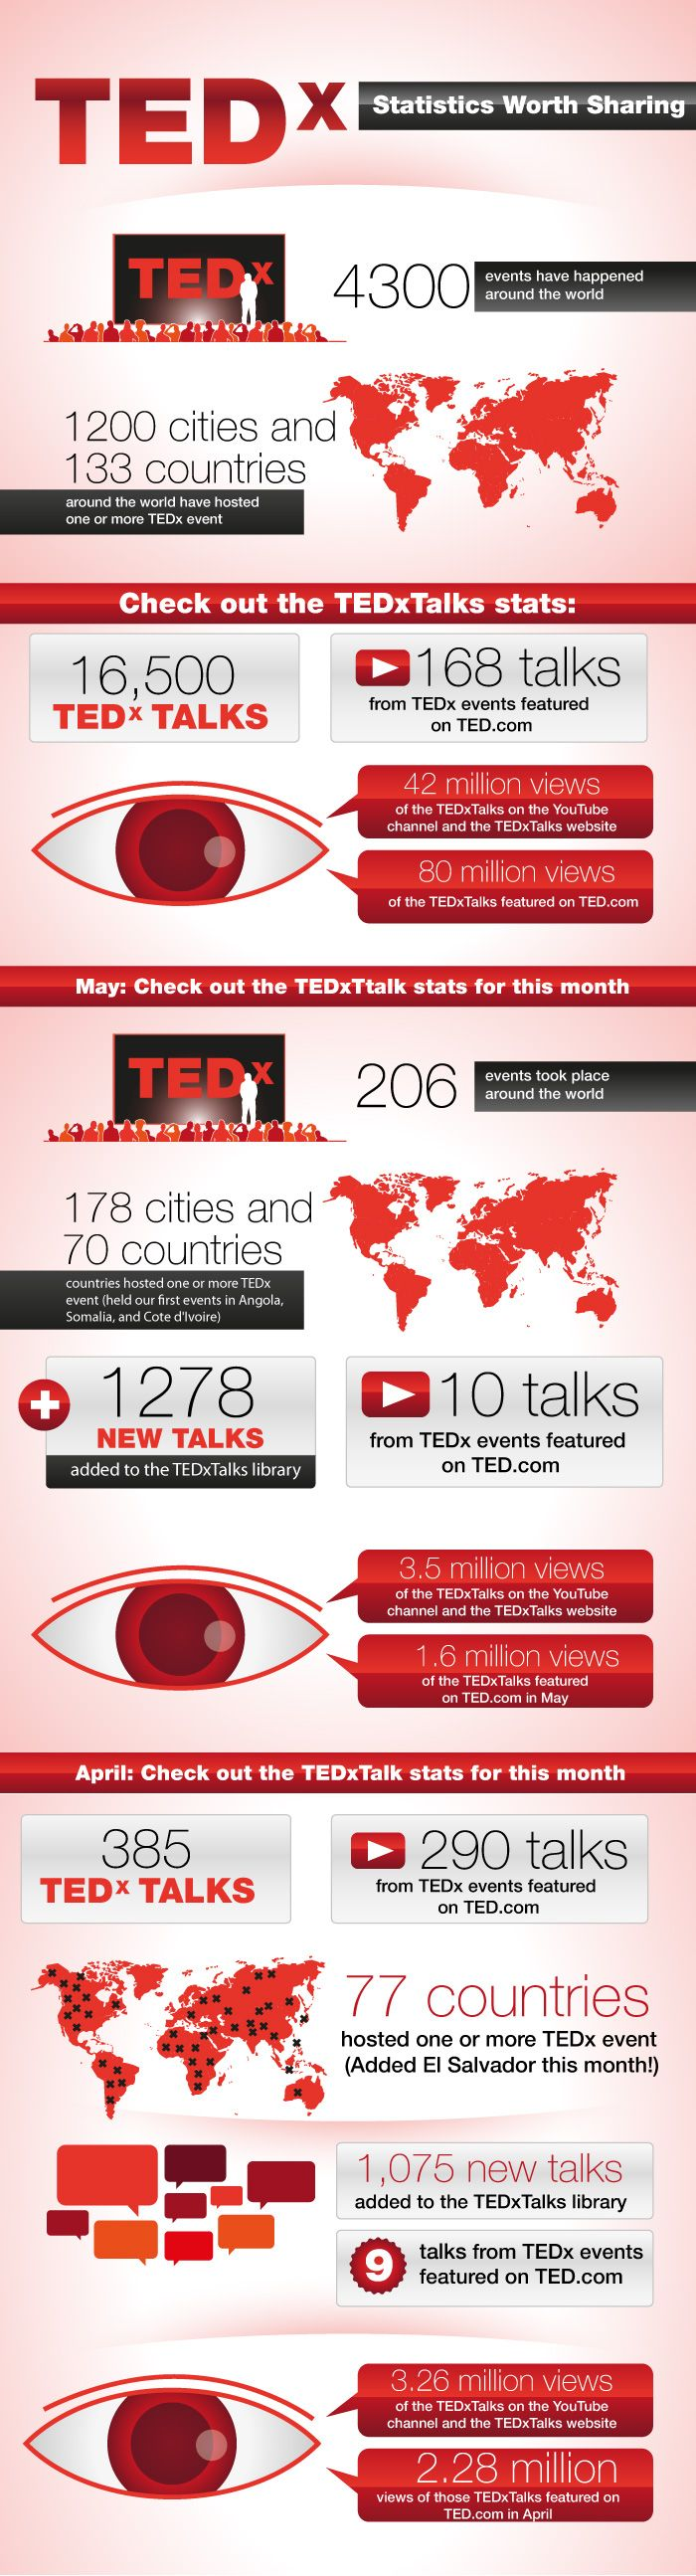 TED and TEDx final Infographic